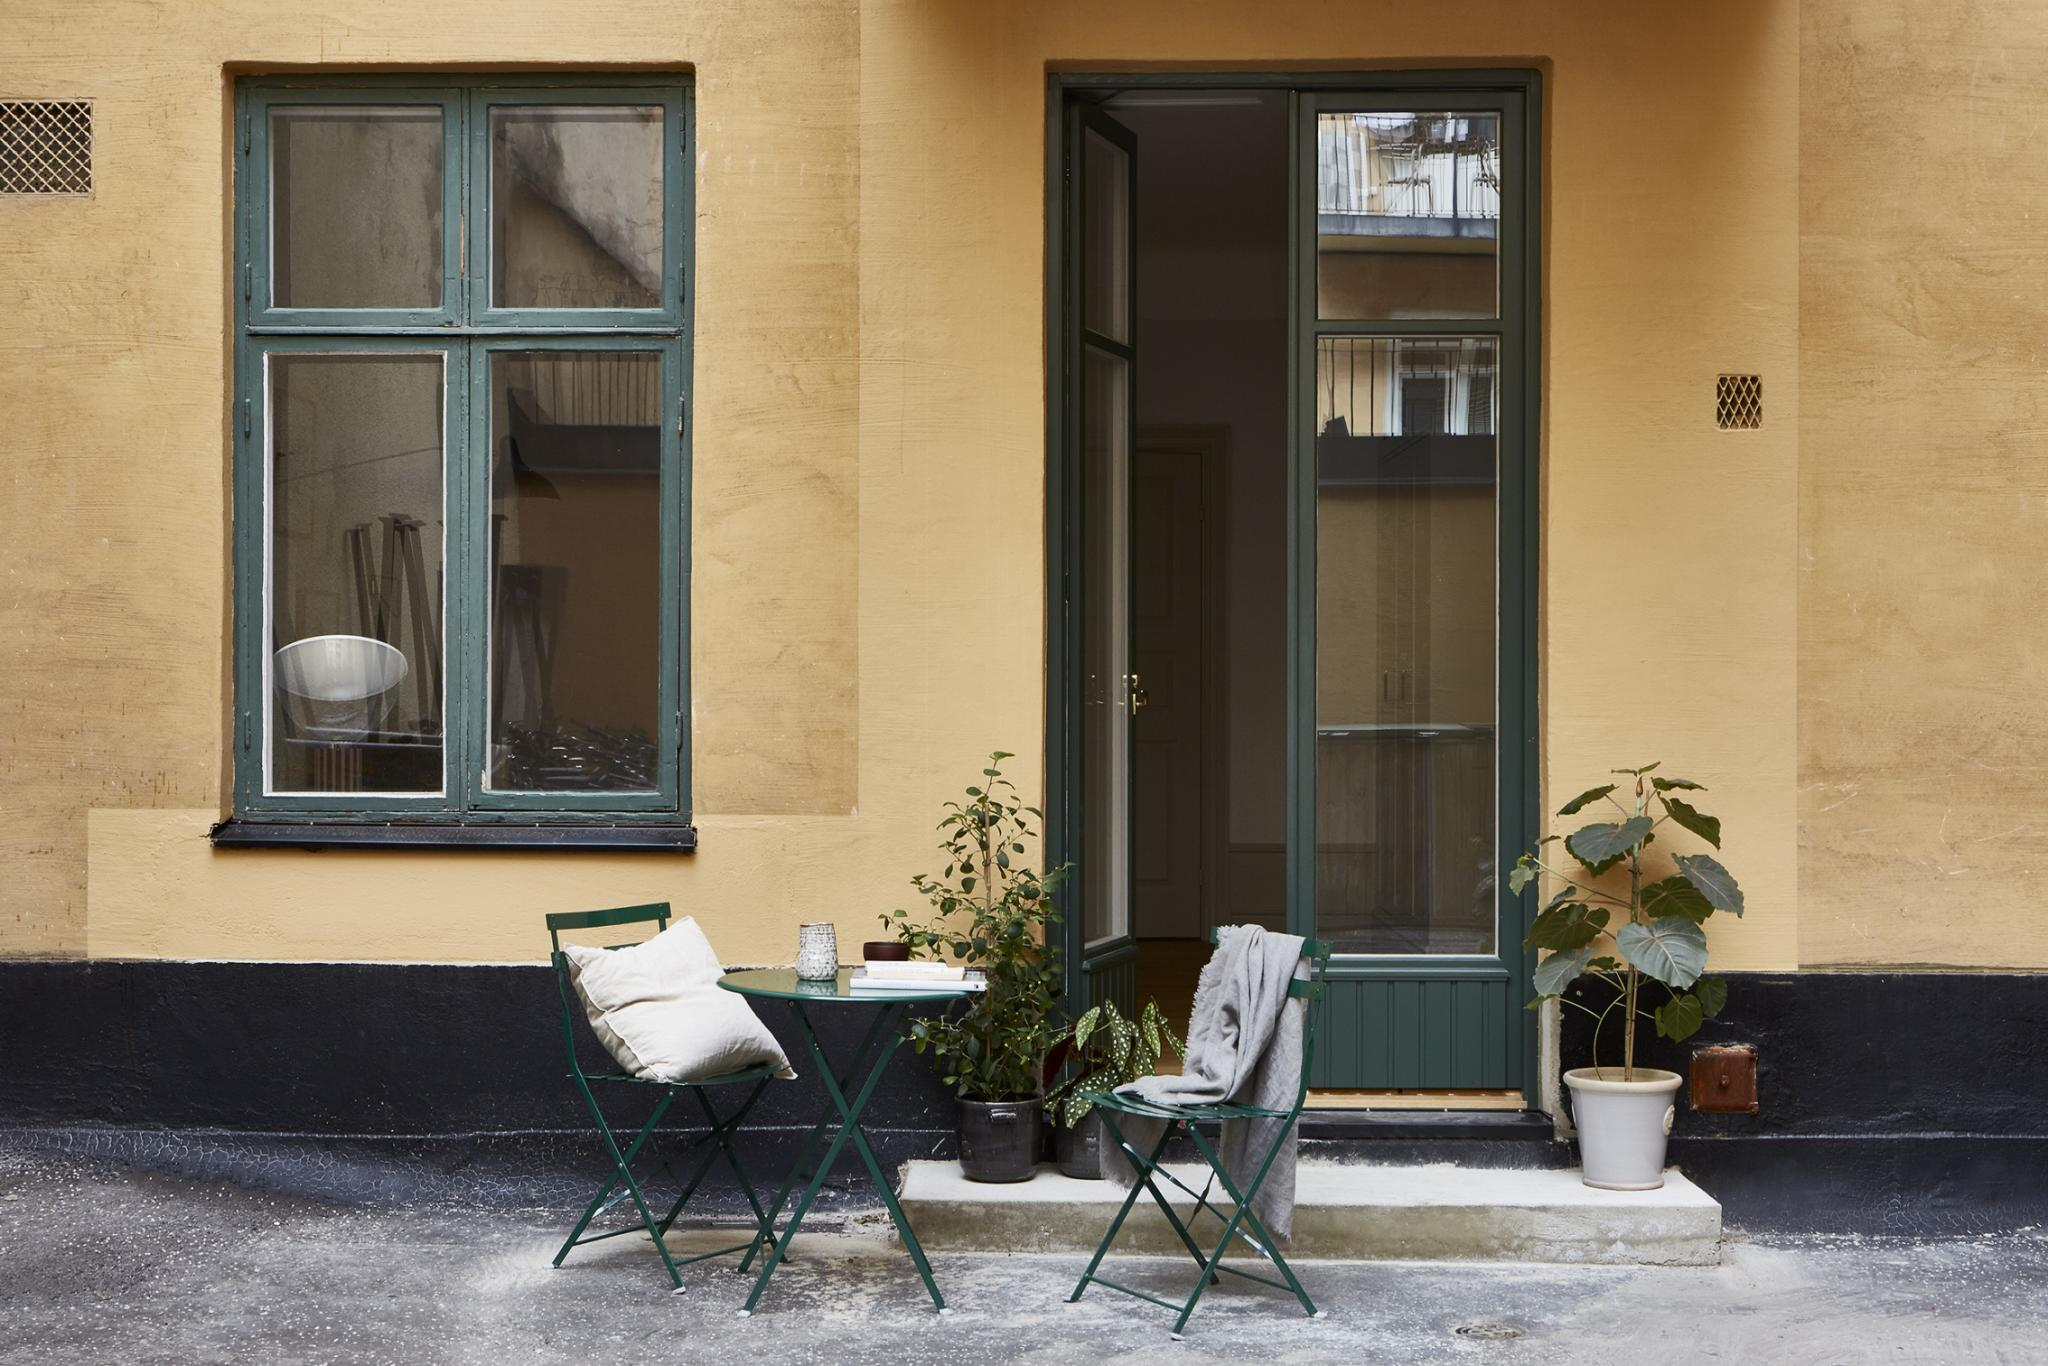 Deep green trim on yellow stucco Stockholm apartment with bistro set outdoors